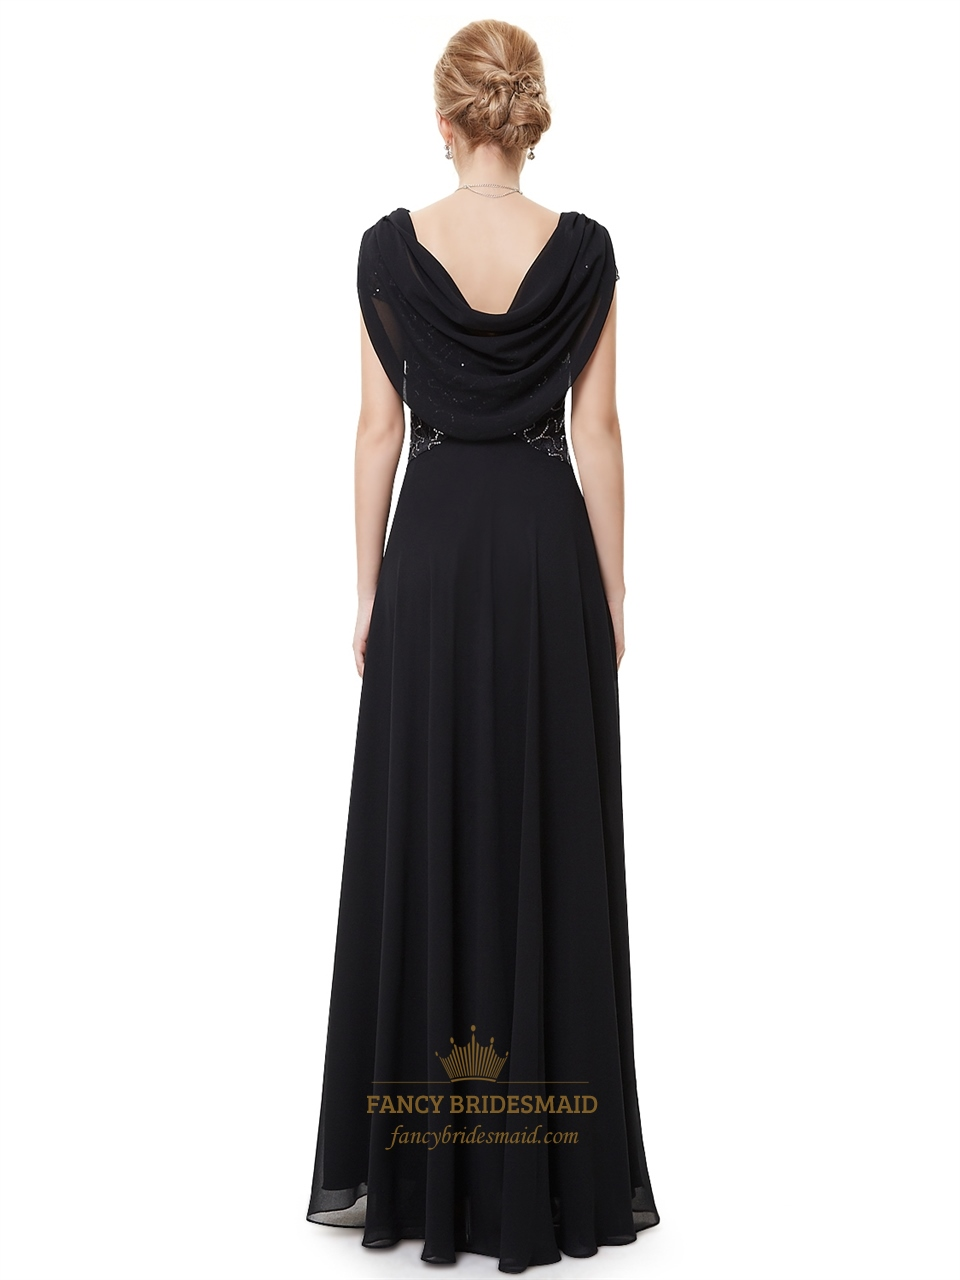 Black Bridesmaid Dresses With Cap Sleeves : Black chiffon cap sleeves cowl back prom dress with lace